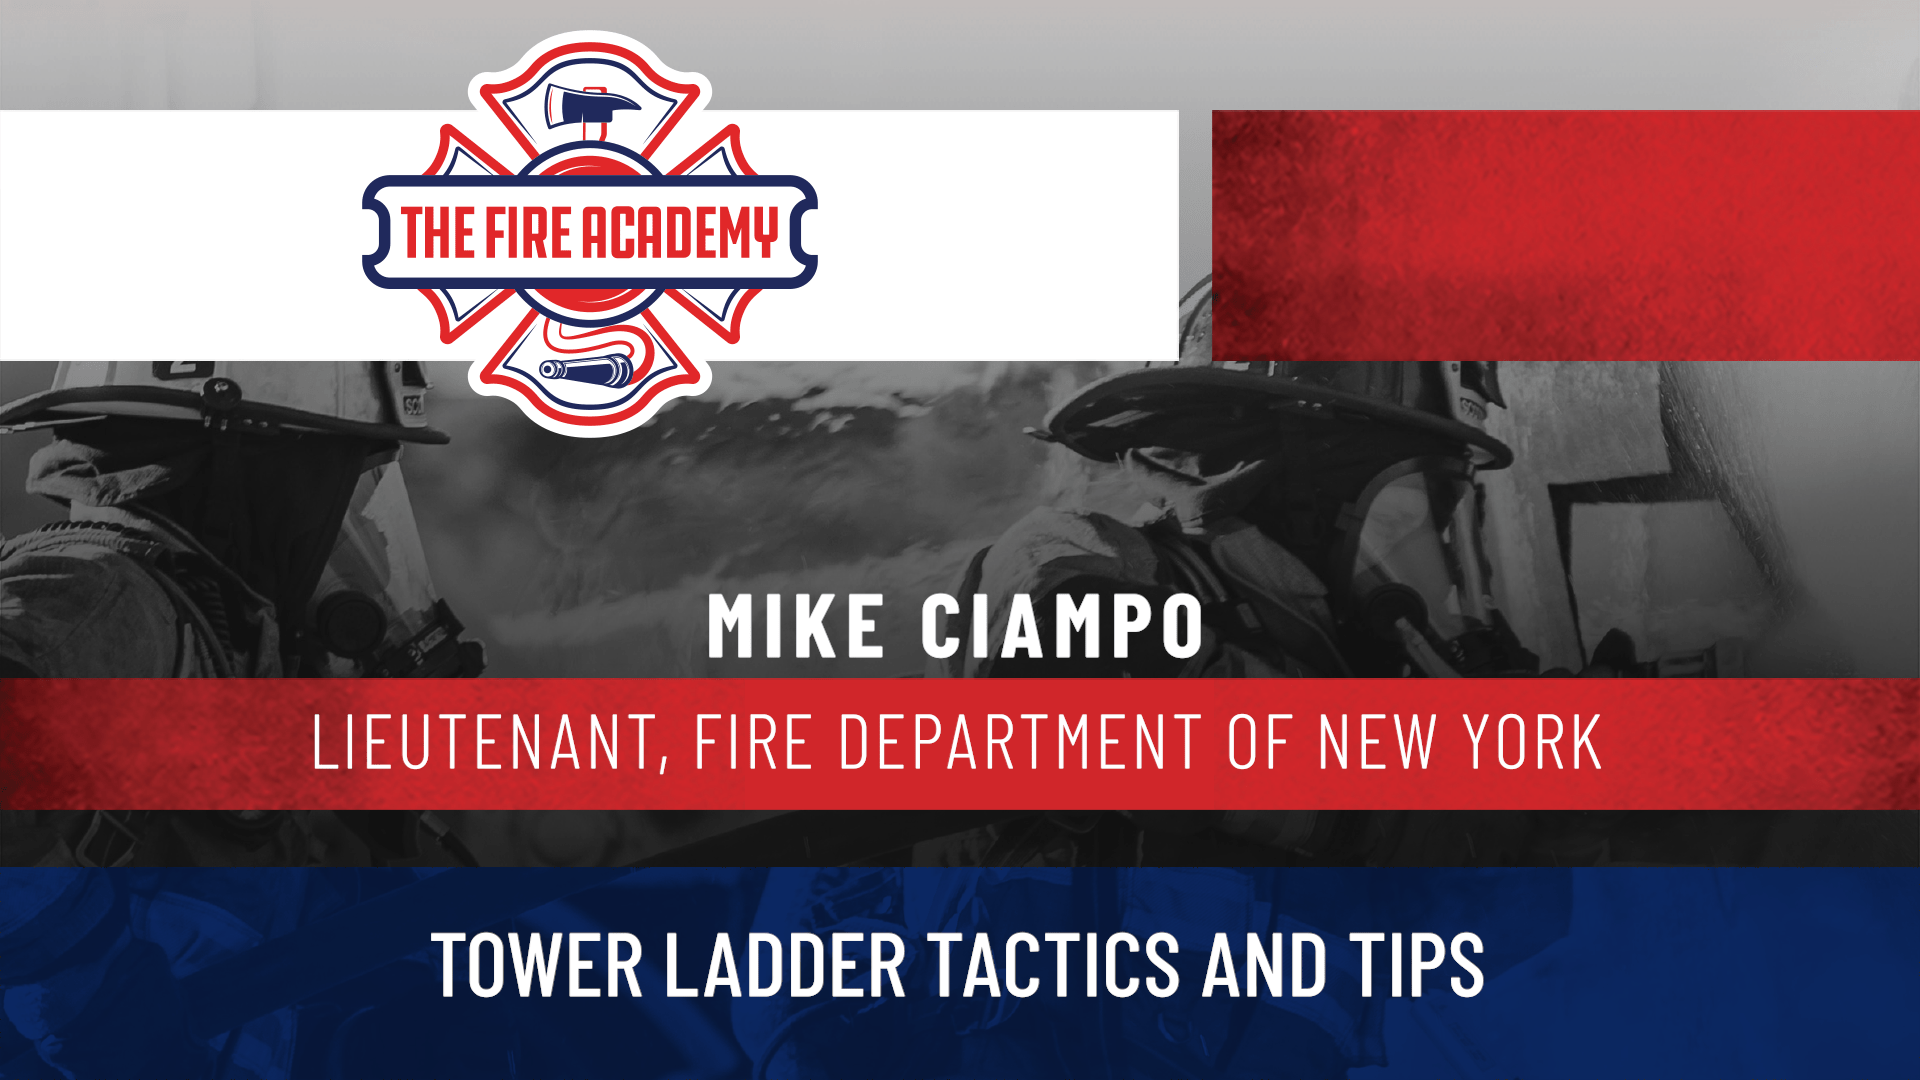 Tower Ladder Tactics and Tips